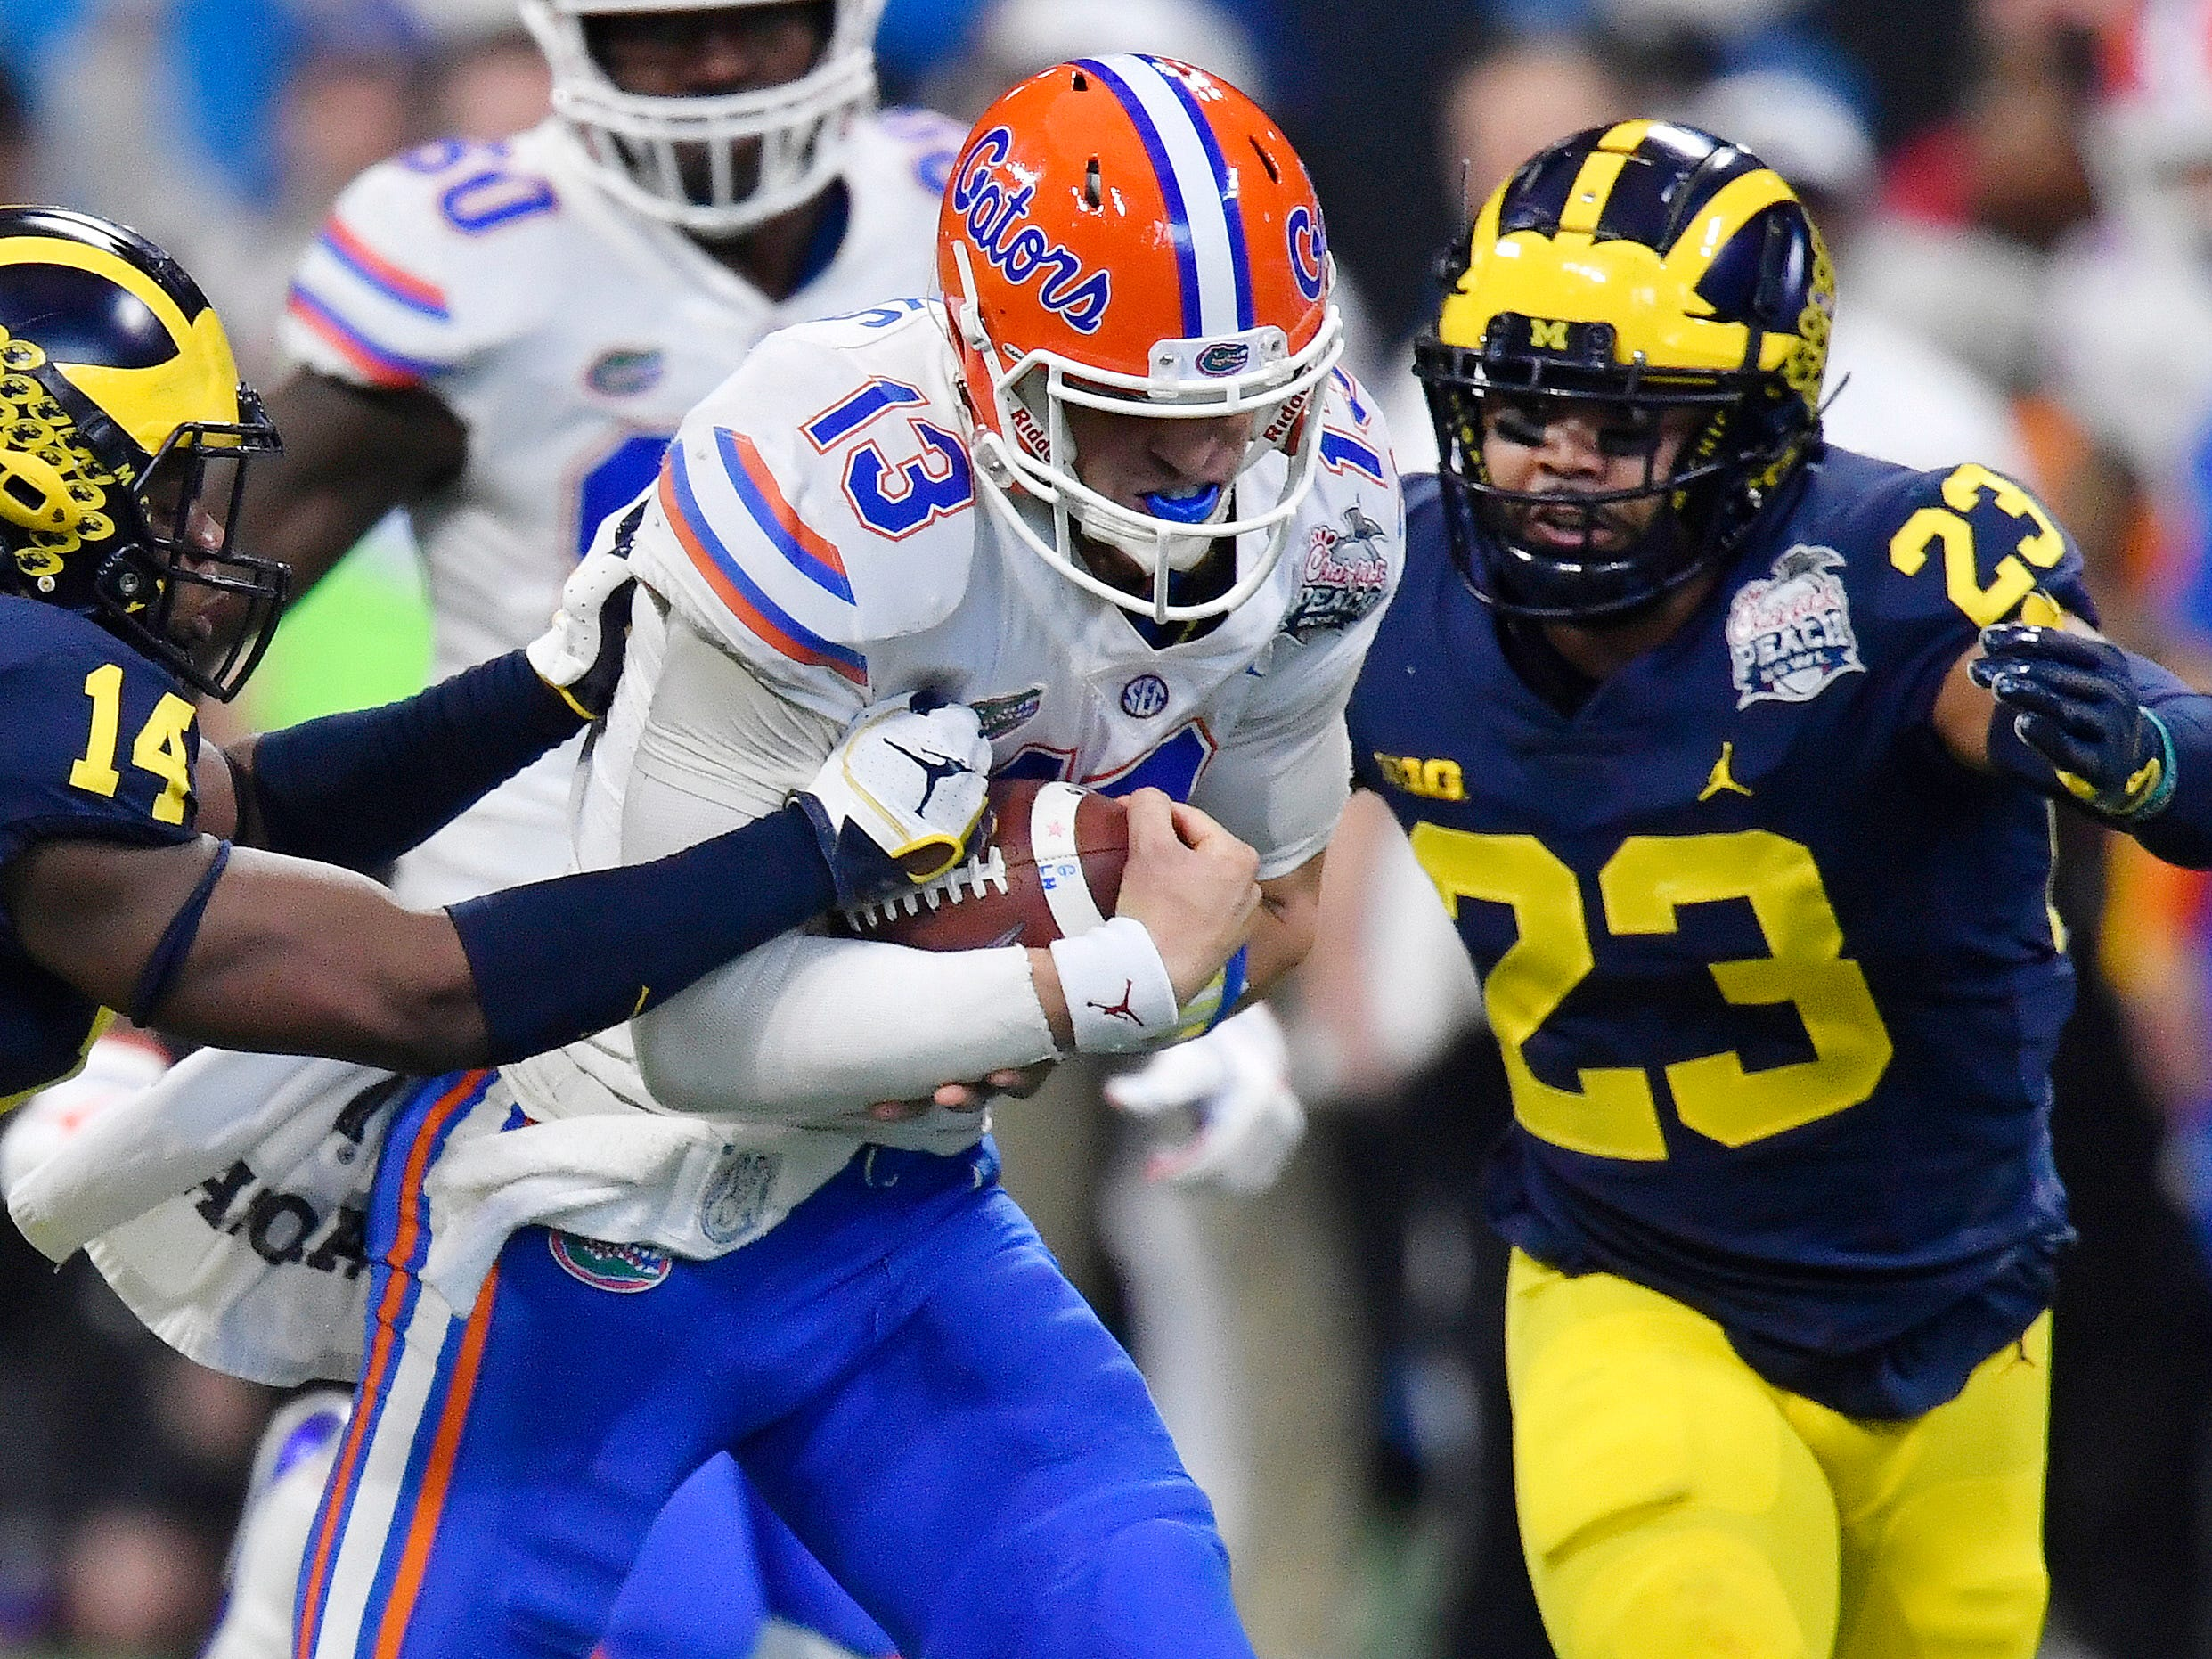 Florida quarterback Feleipe Franks runs out of the pocket against Michigan defensive back Josh Metellus during the first half of the Peach Bowl on Saturday, Dec. 29, 2018, in Atlanta.